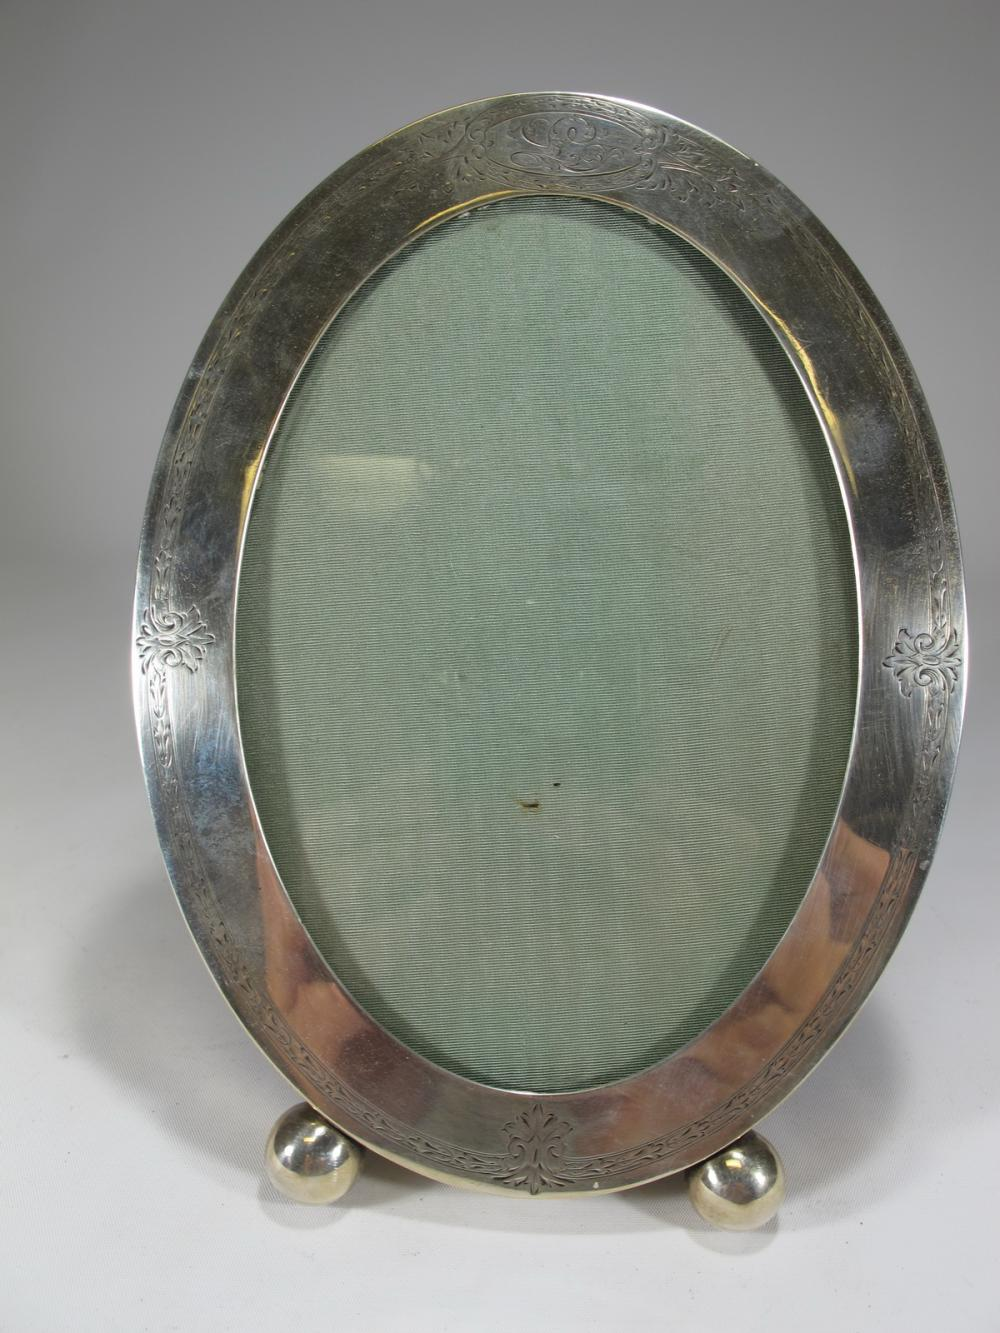 Picture Frames for Sale at Online Auction | Buy Rare Picture Frames